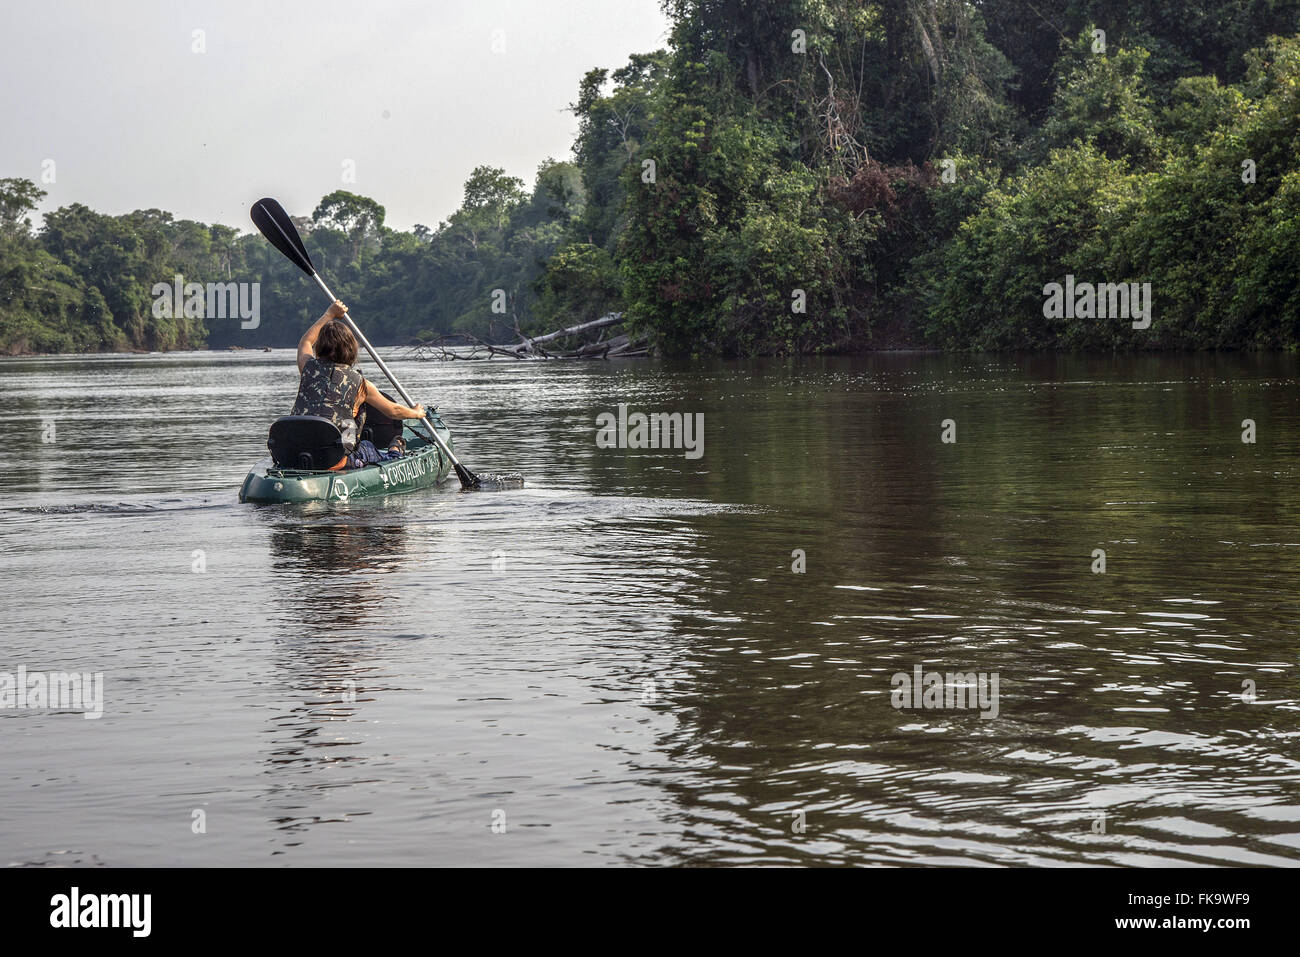 Canoeing on the Rio Cristalino - Stock Image